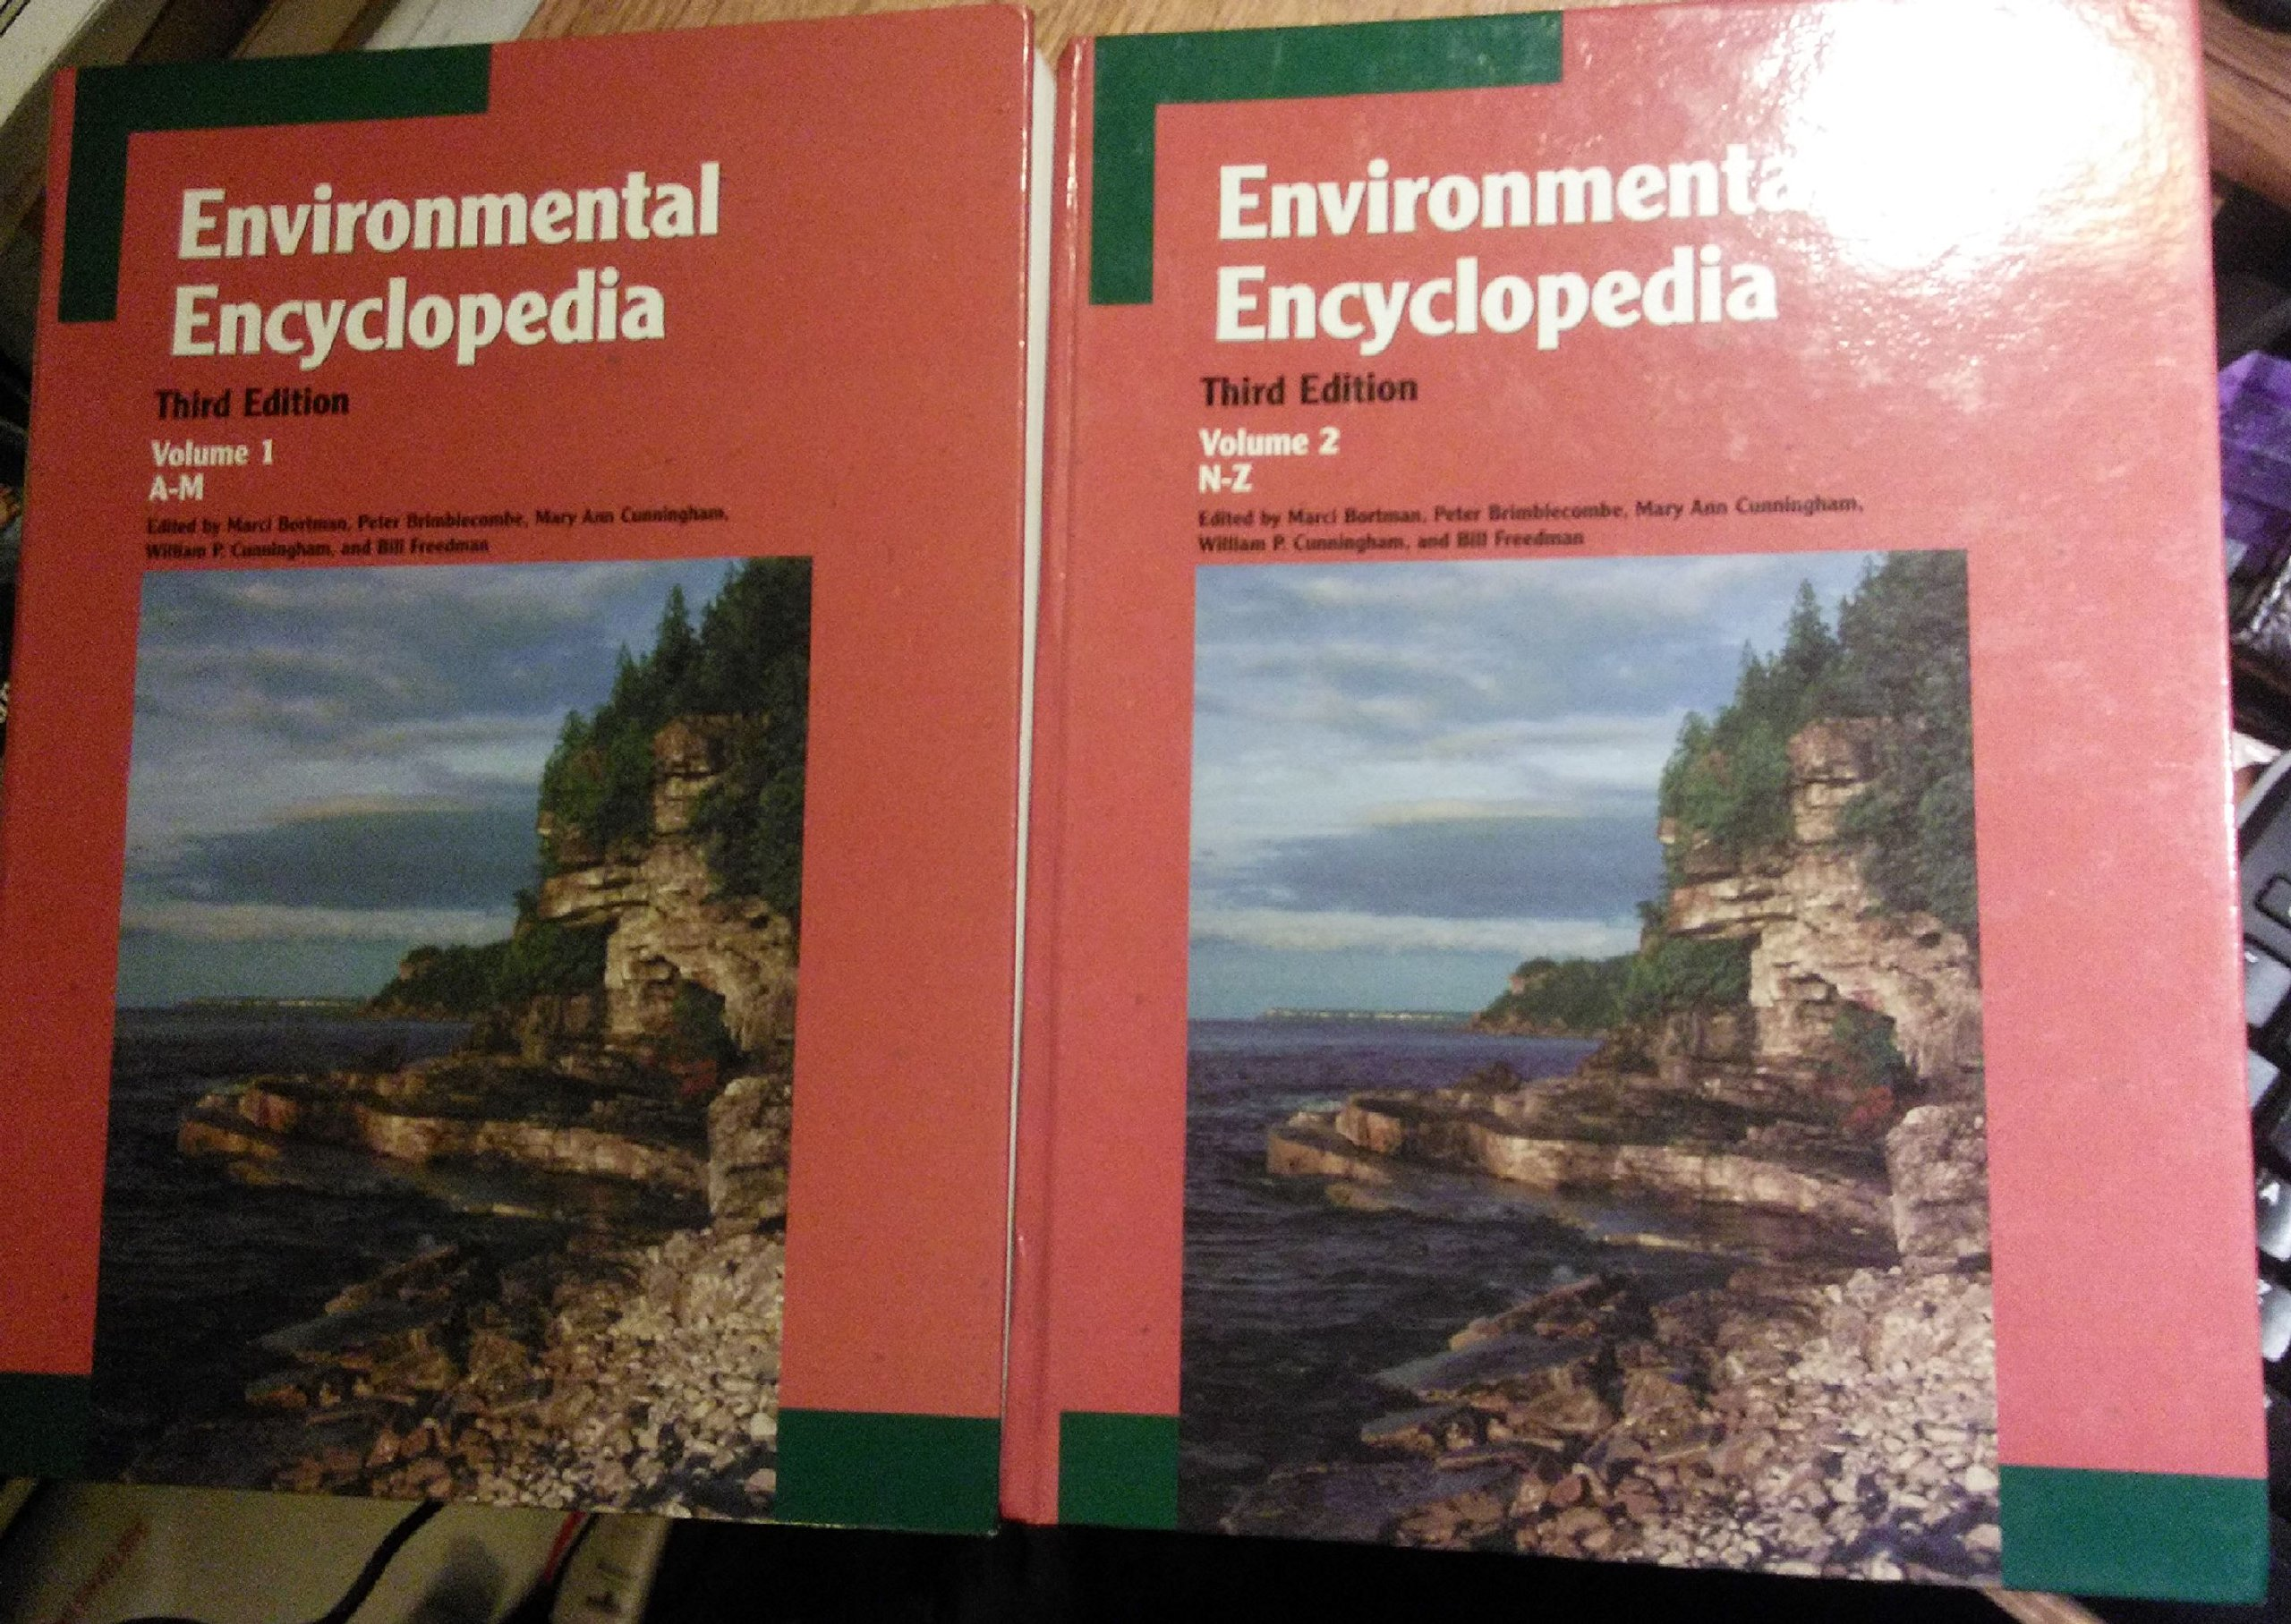 Search the Contents of Reference Books